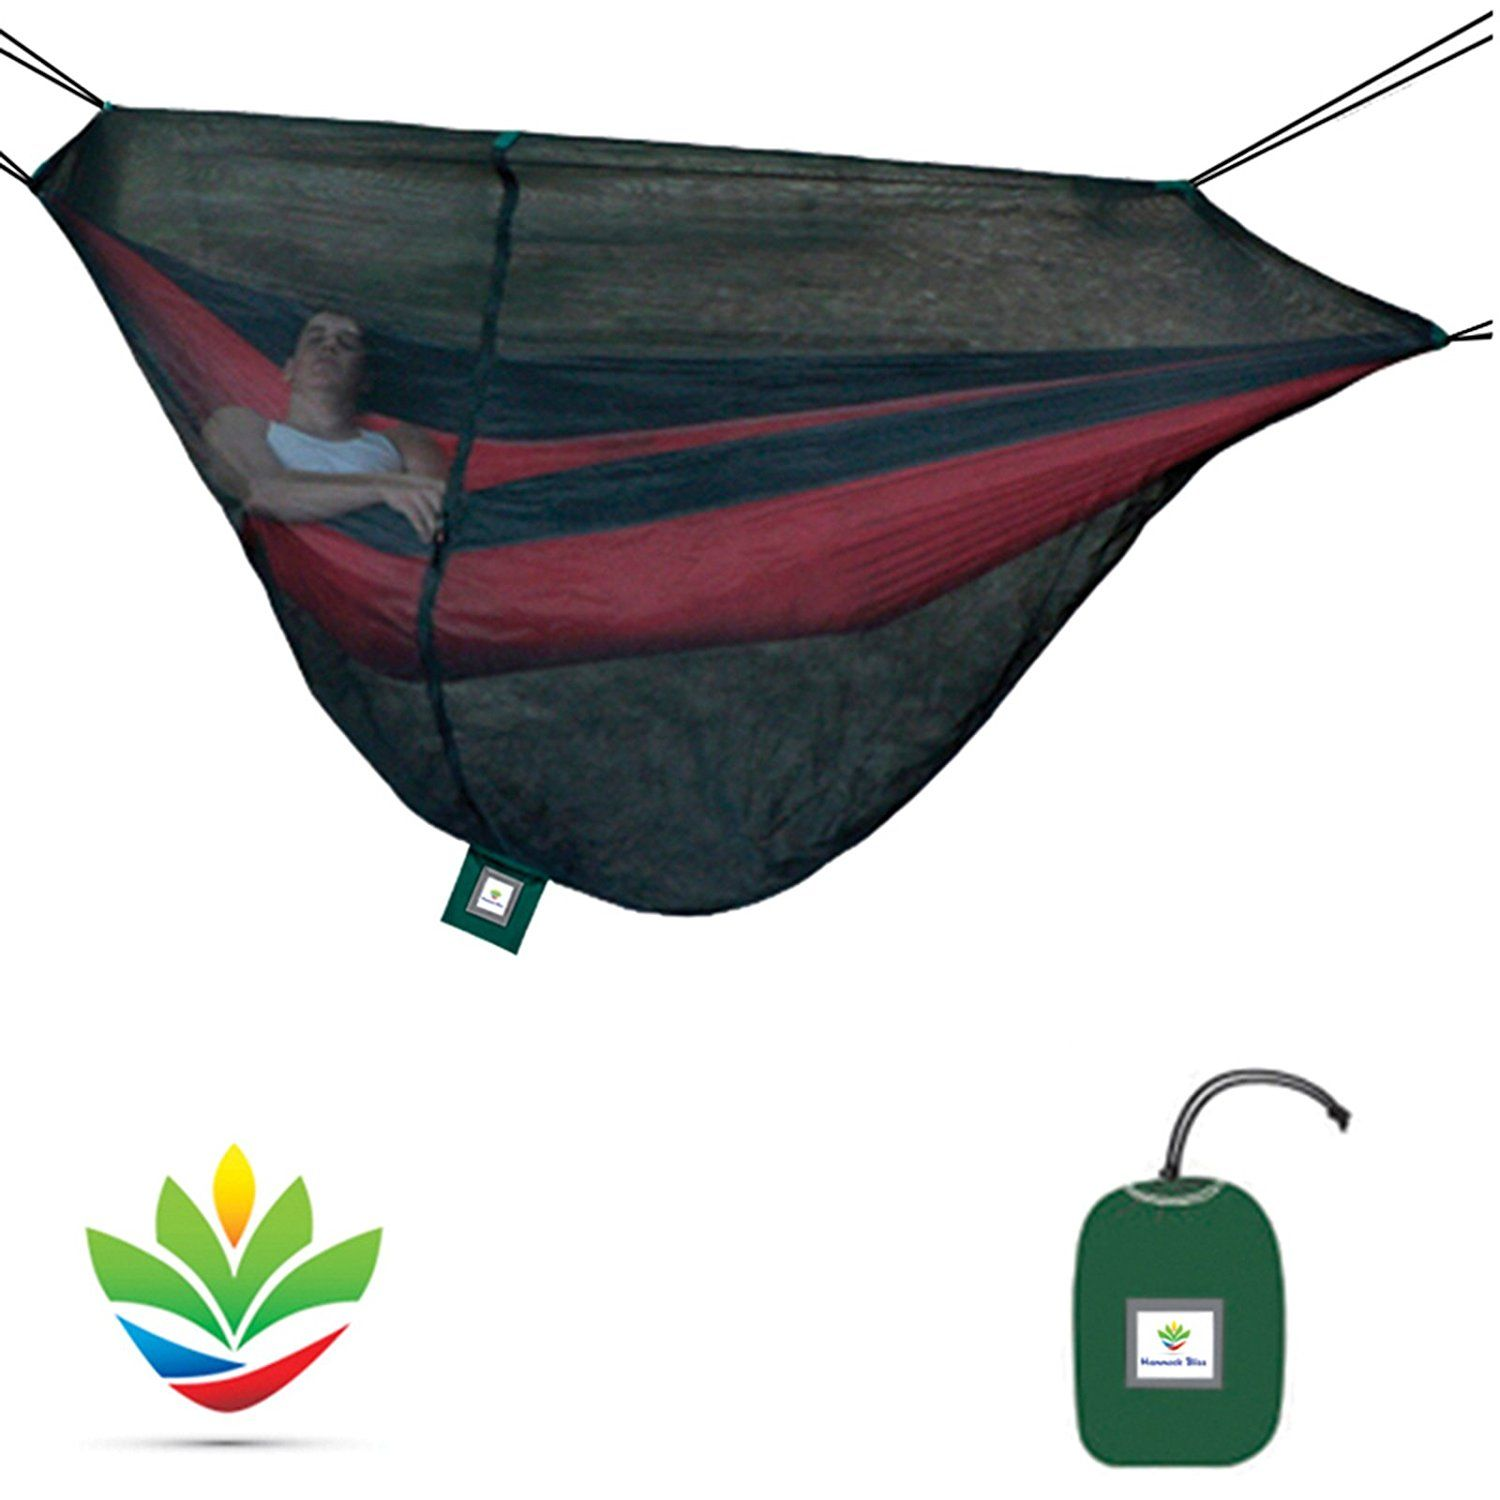 sans heavier gear forest hammock the removable is amp system top bug specialist blackbird netting larger high original its than xlc list zone use backpacking